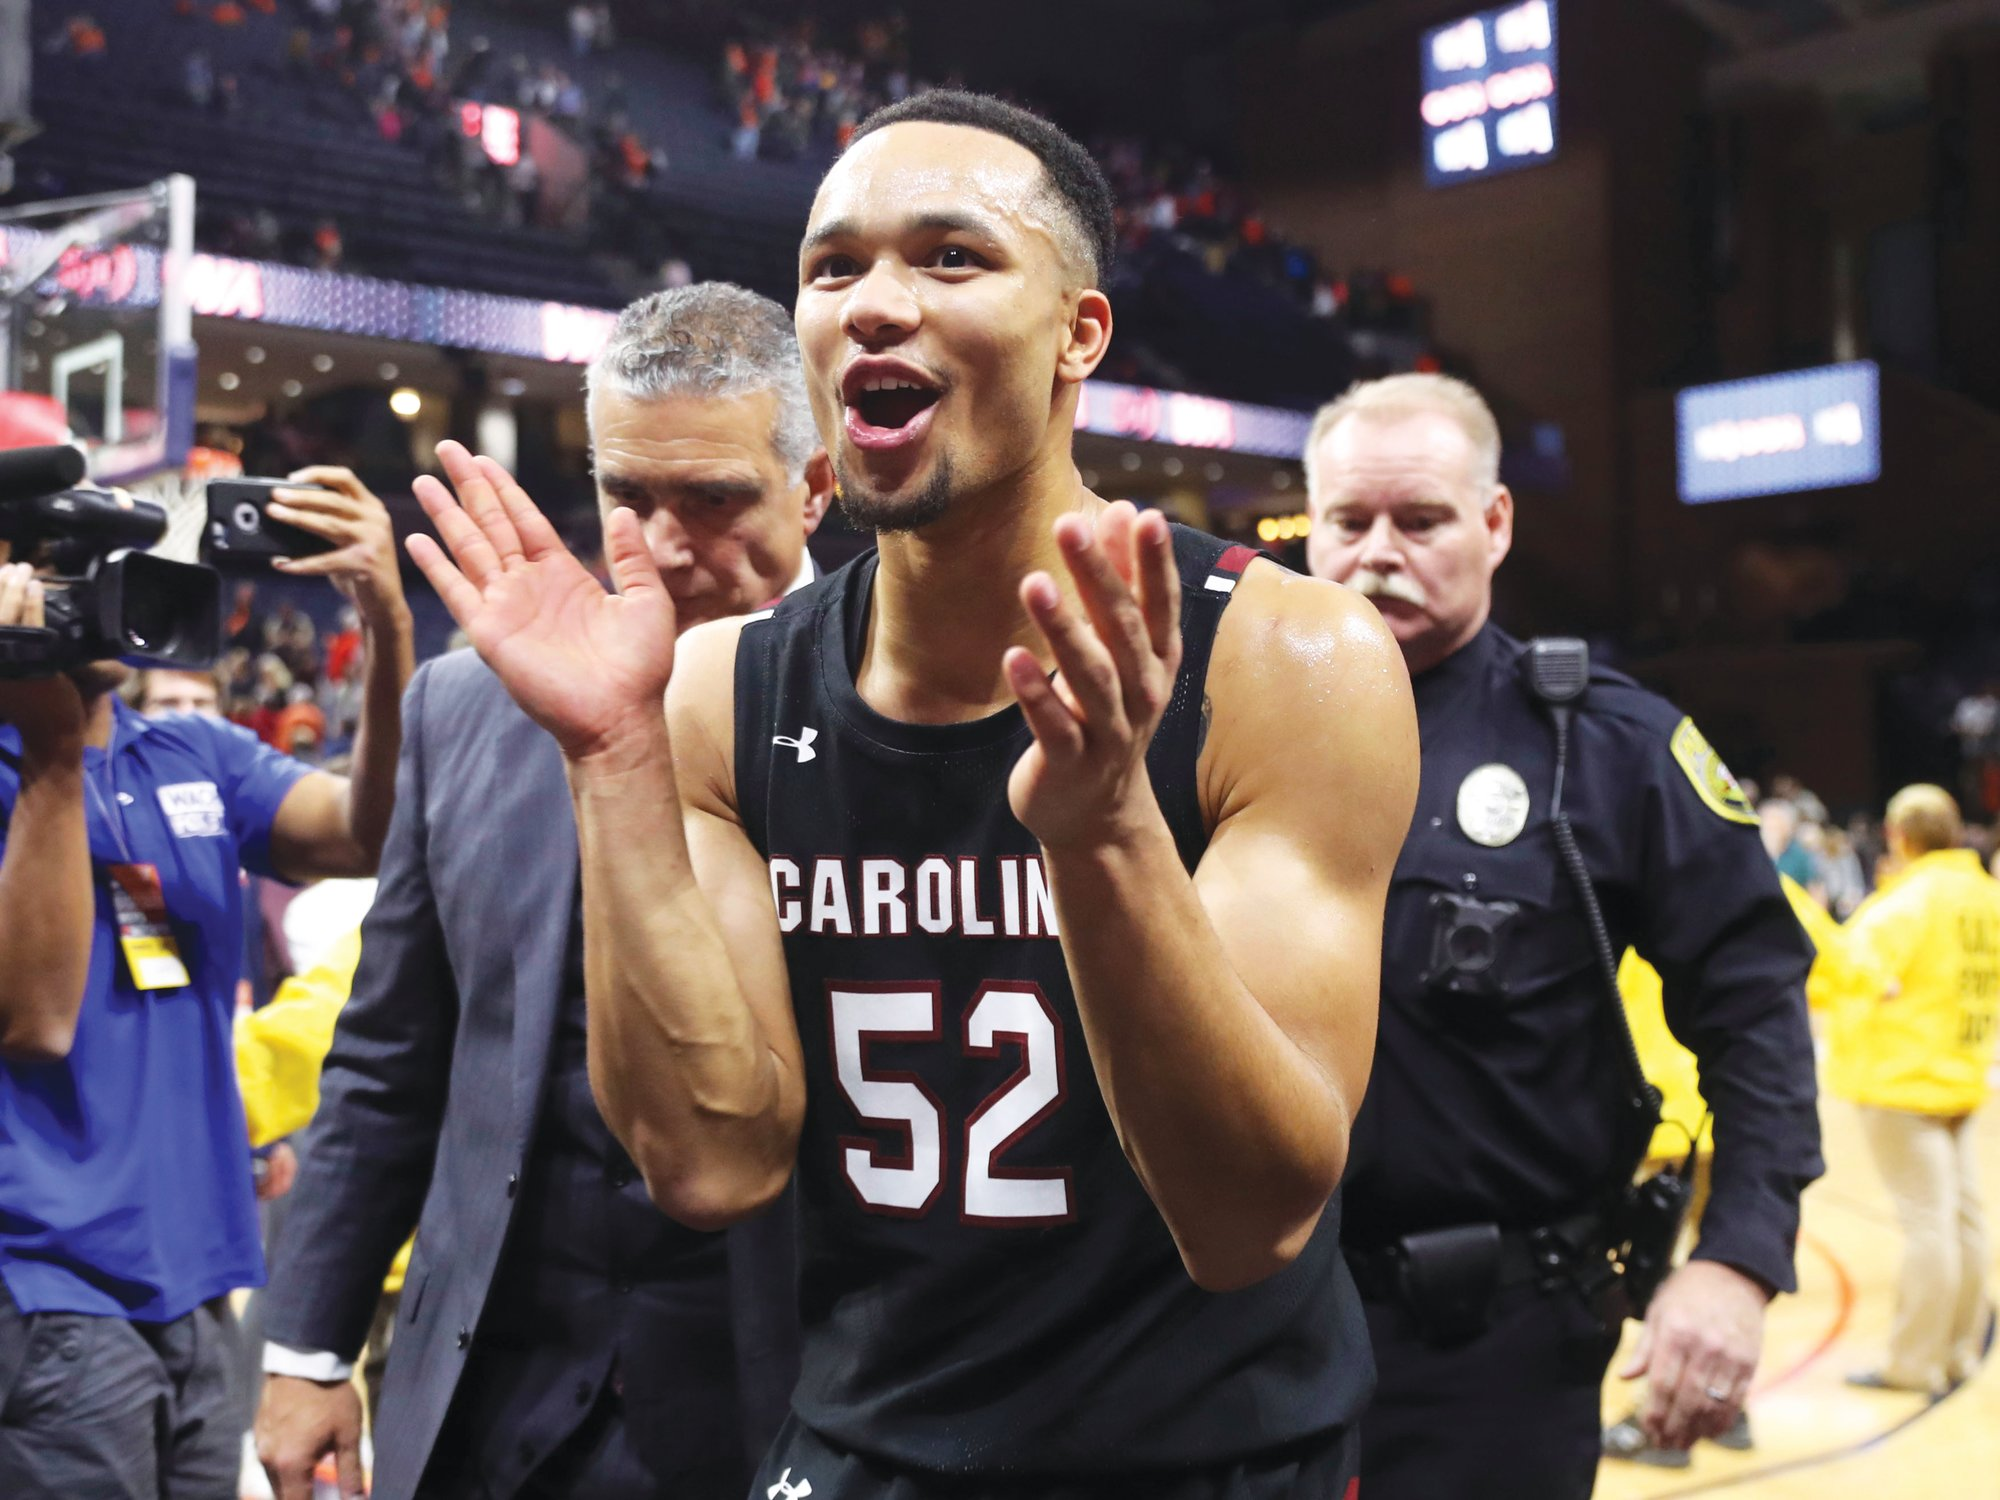 South Carolina guard Jair Bolden (52) reacts to the Gamecocks' 70-59 win over Virginia in Charlottesville, Virginia on Sunday.